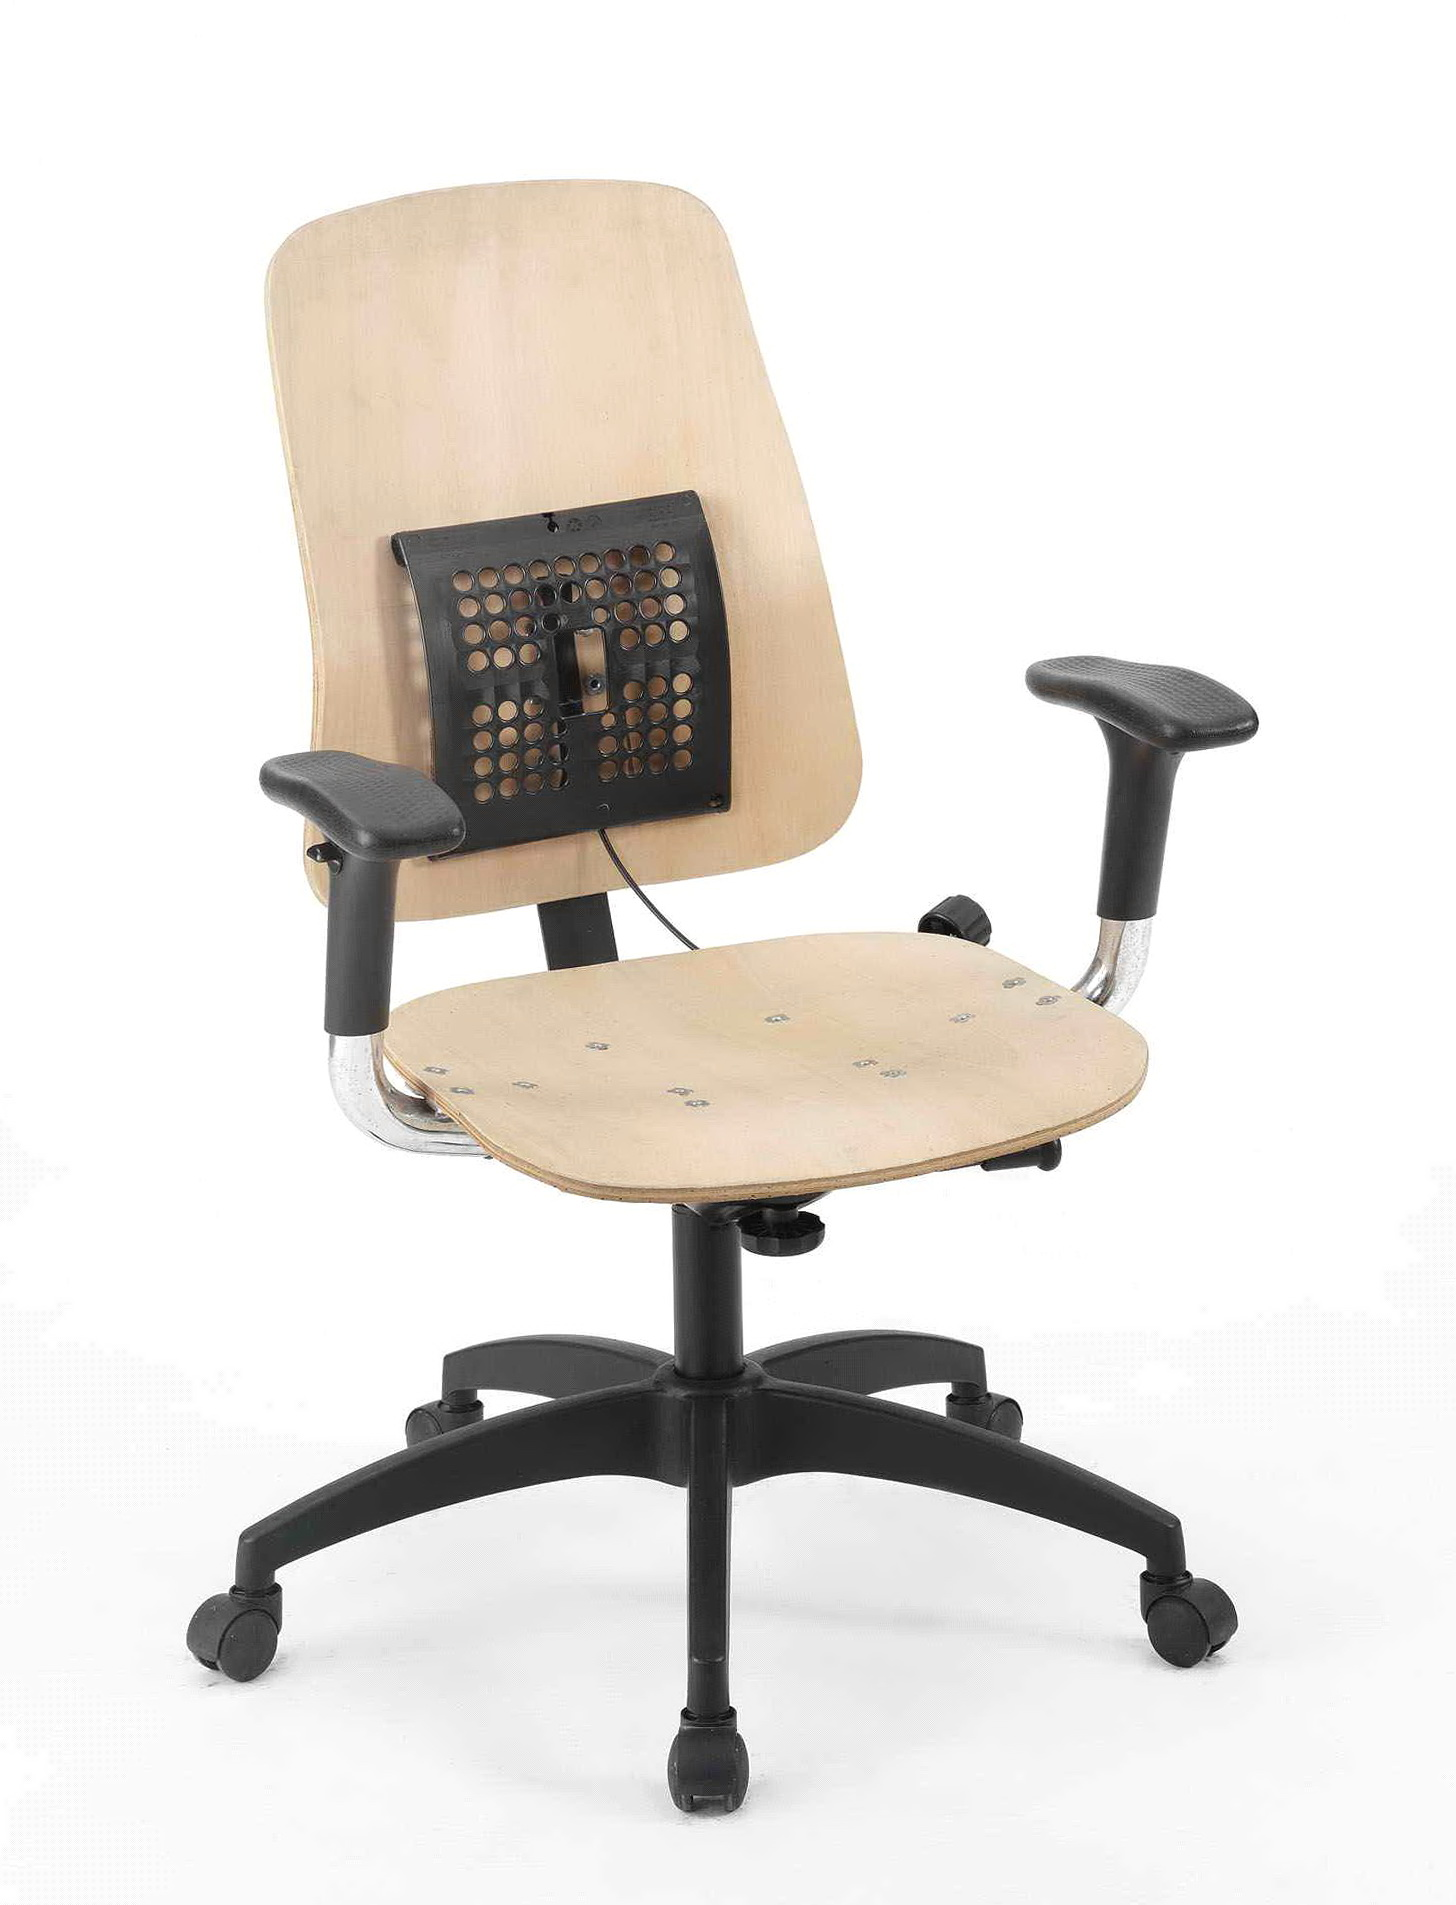 Office Chair Back Cushion Back Cushion For Office Chair Singapore Home Design Ideas